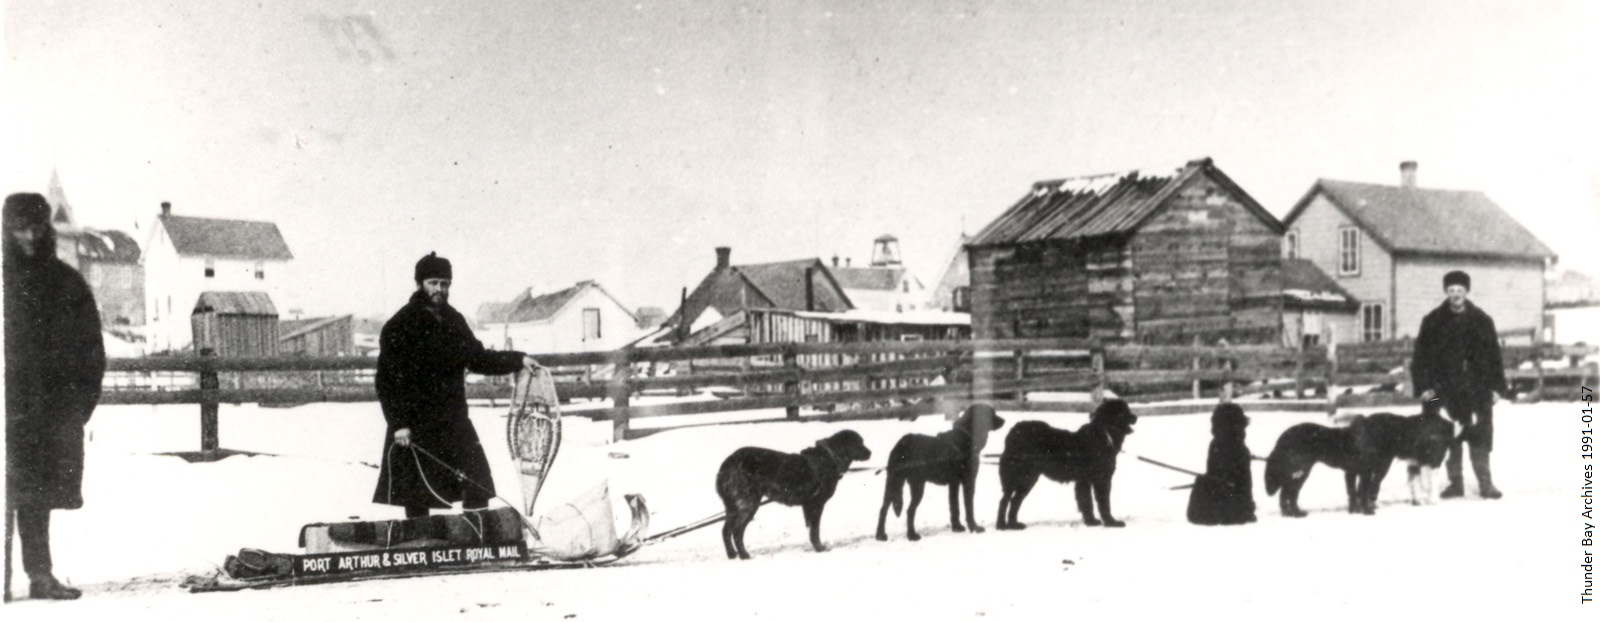 black and white photo of men in snow with dogs sled in front of houses